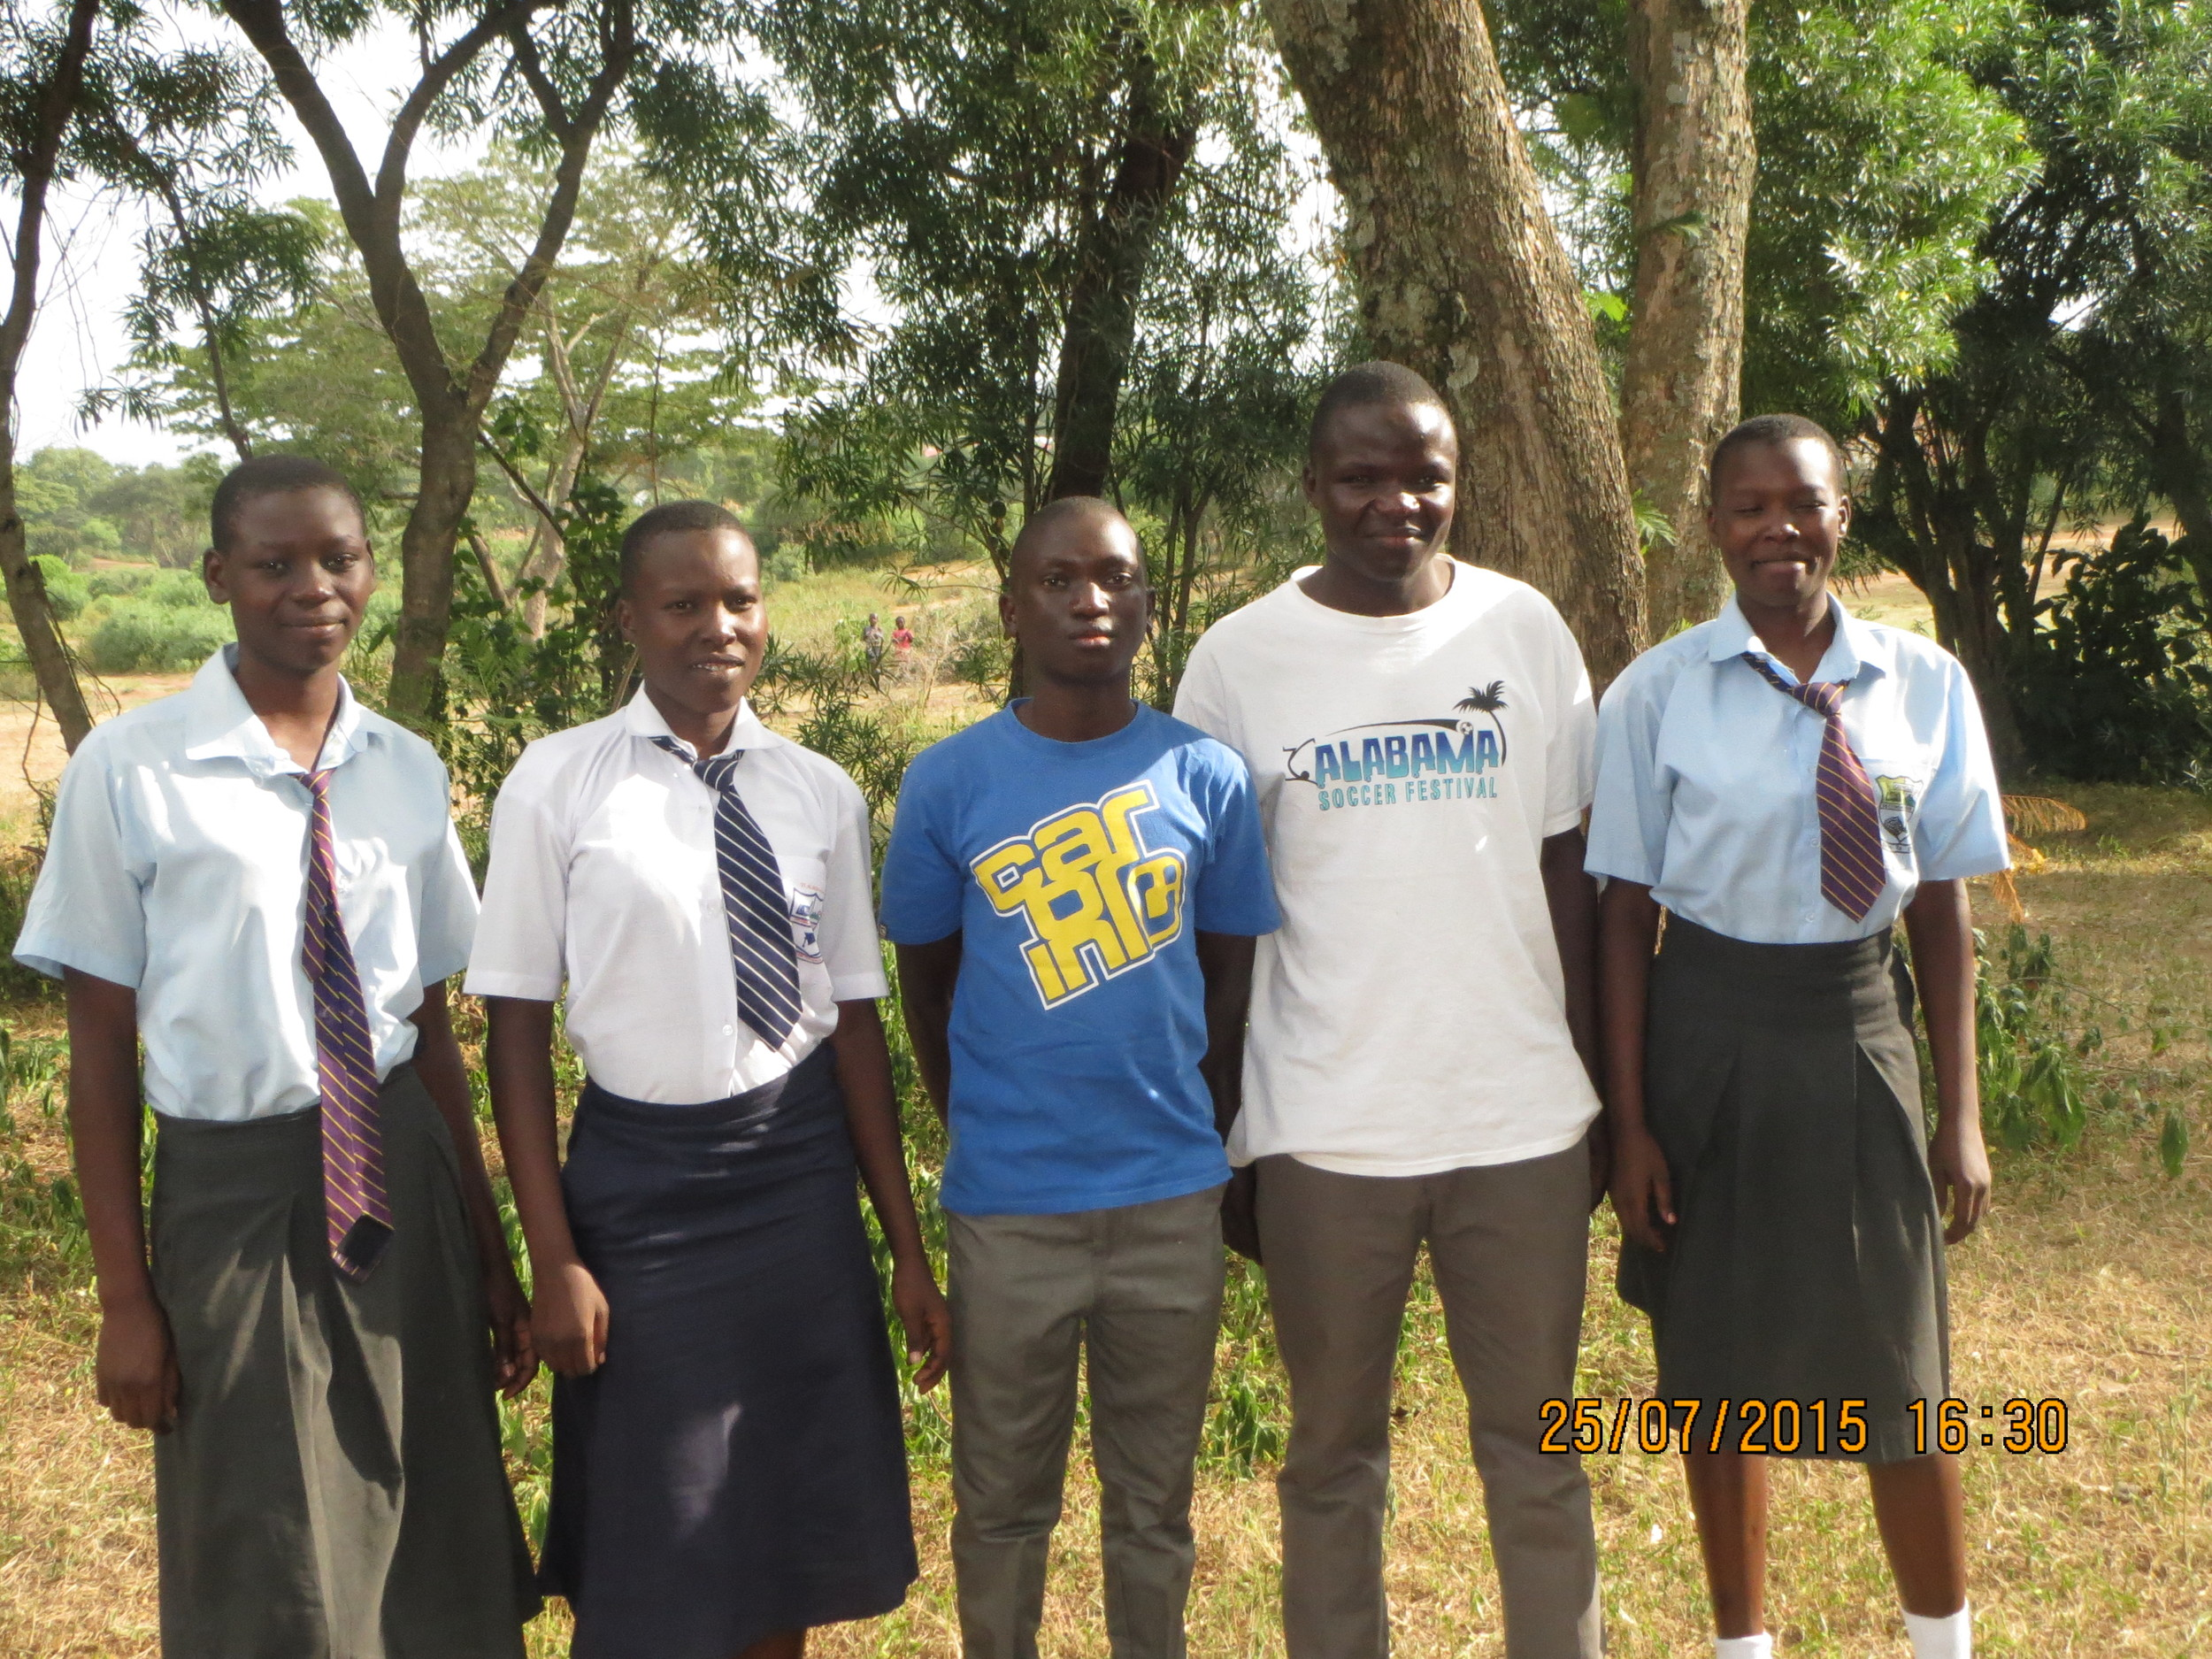 Nancy, Lorrine, Kennedy, Brian and Lavine are Secondary School students supported by KOFUP